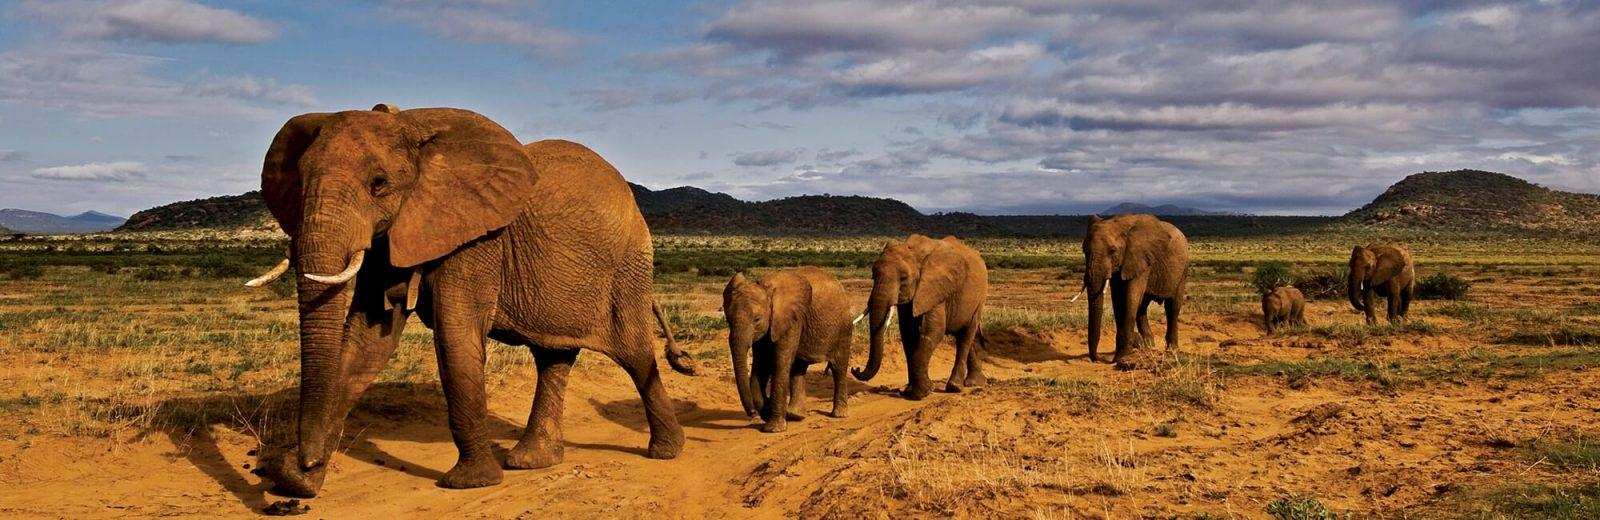 climb kilimanjaro to save elephants